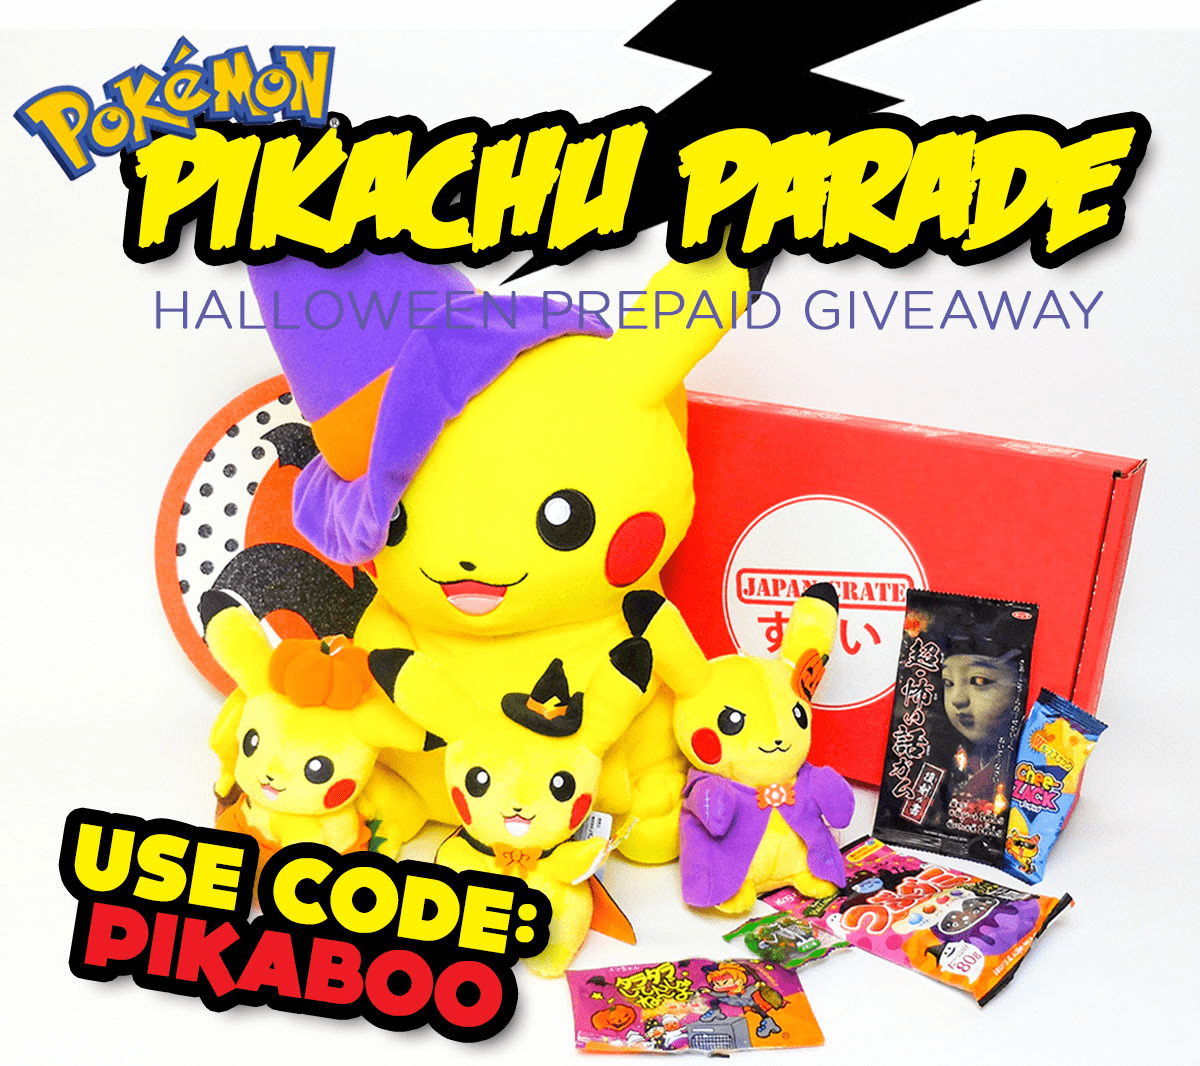 Japan Crate Coupon: Get Bonus Pikachu Plushie With Your First Box!